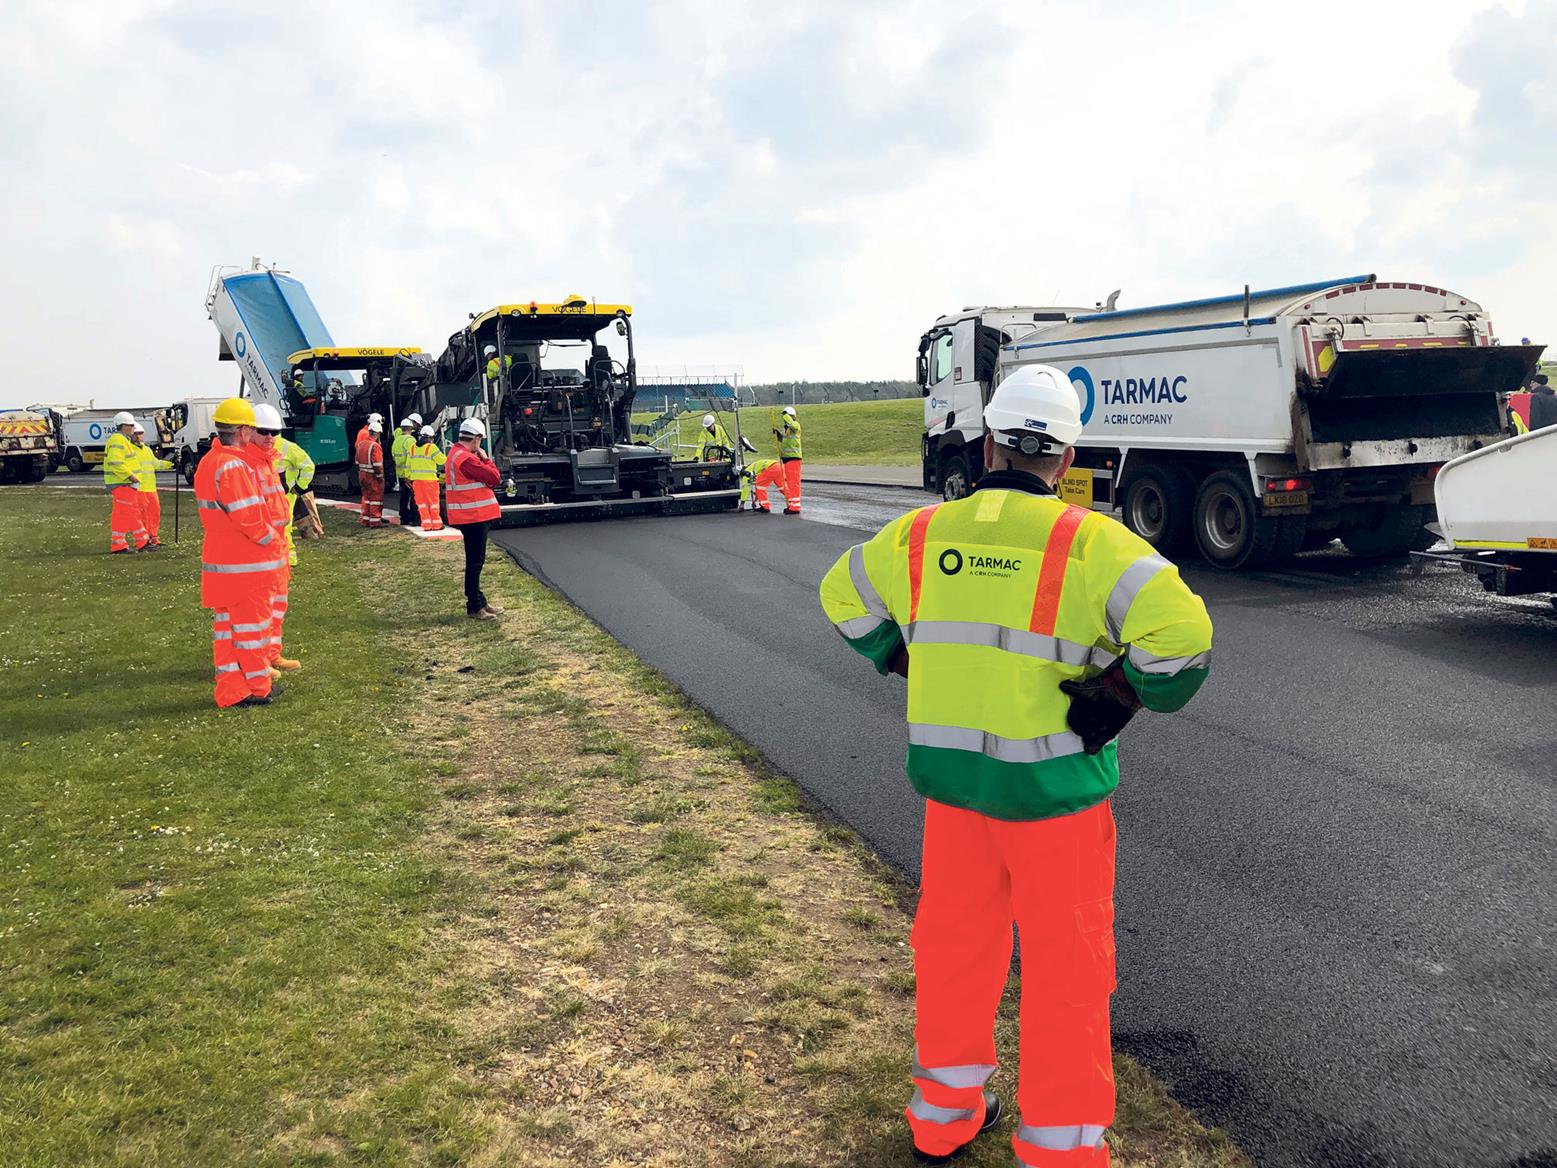 Tarmac has been awarded the contract to resurface Silverstone